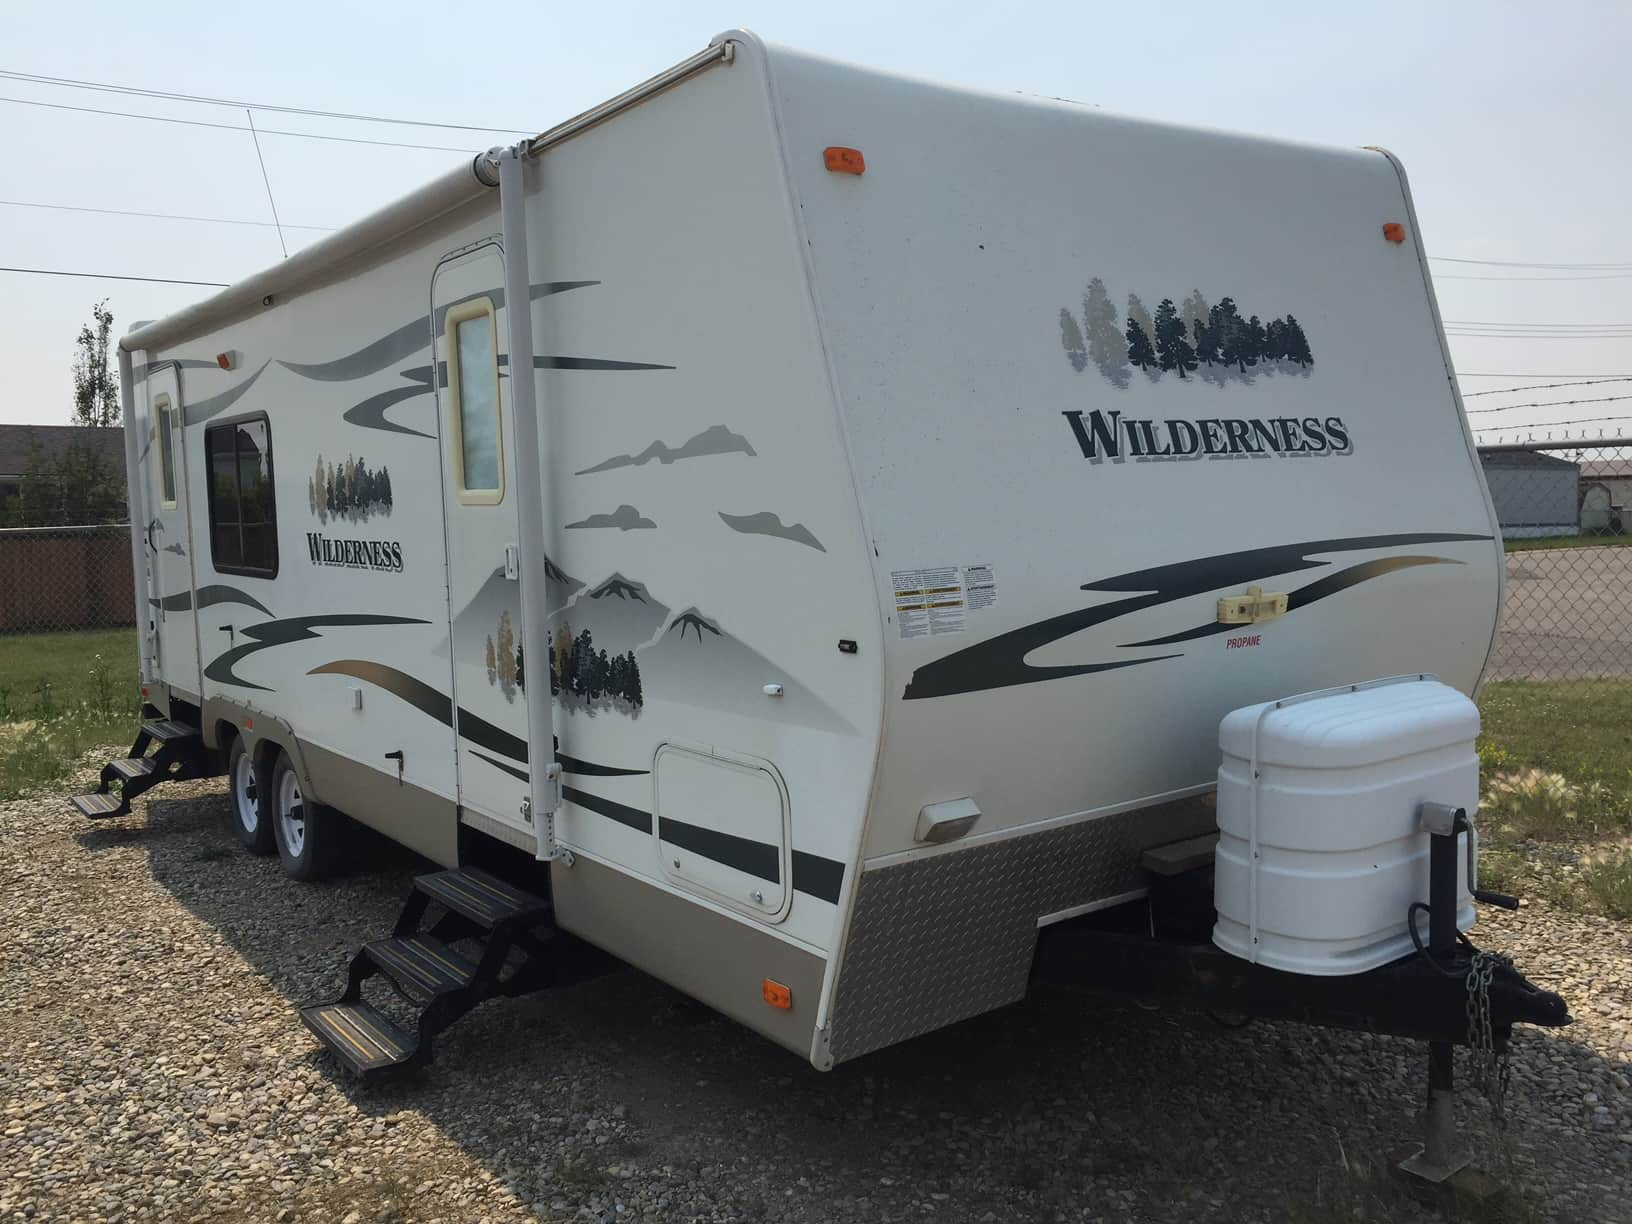 USED 2008 Fleetwood Rv WILDERNESS 240RKS